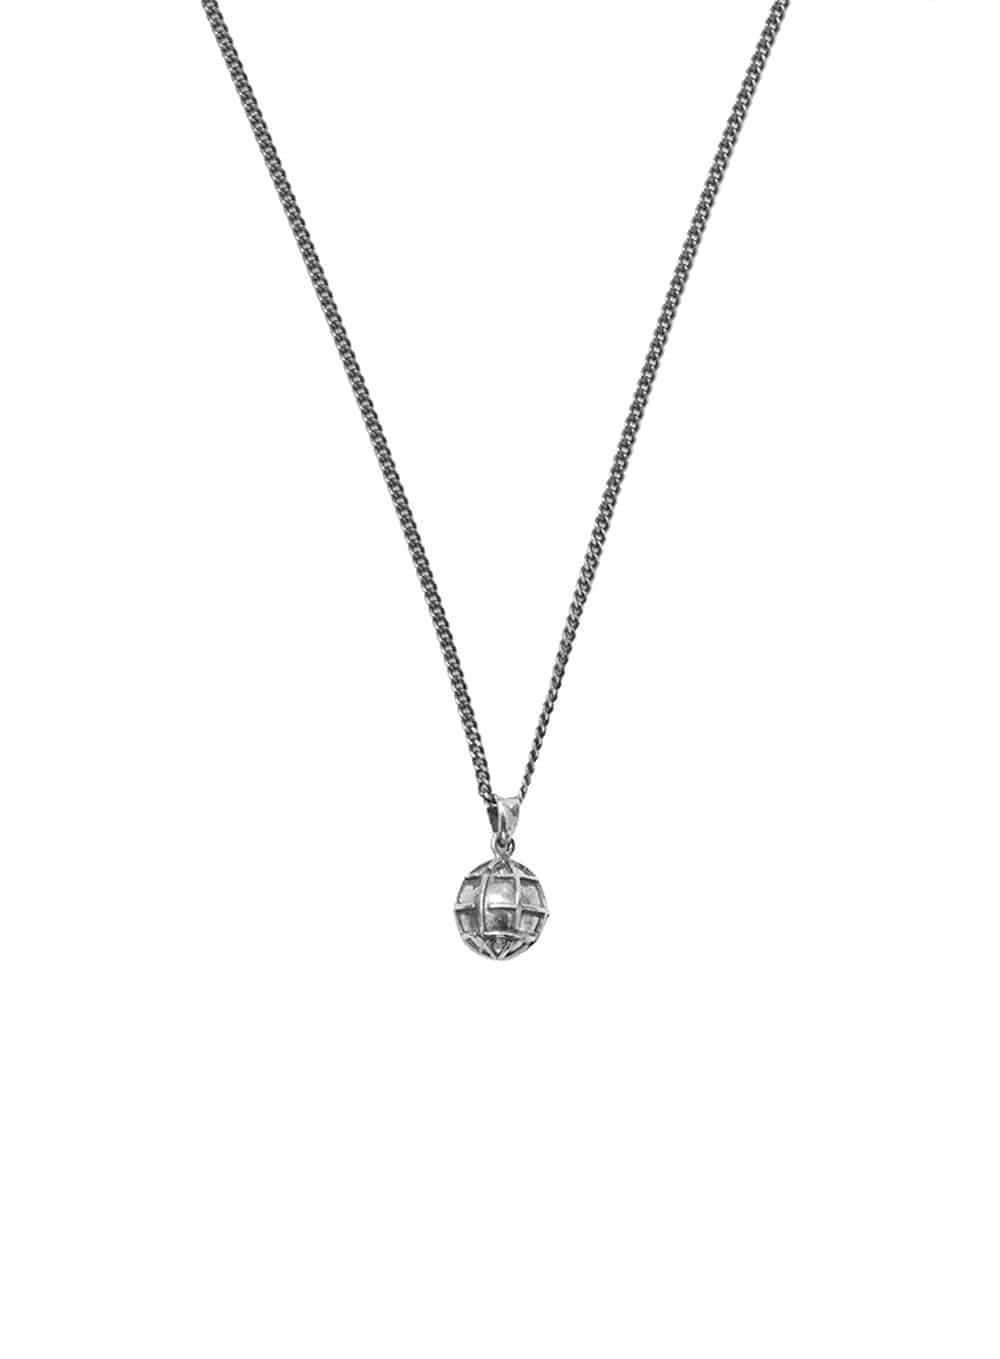 LMC GLOBE SILVER NECKLACE